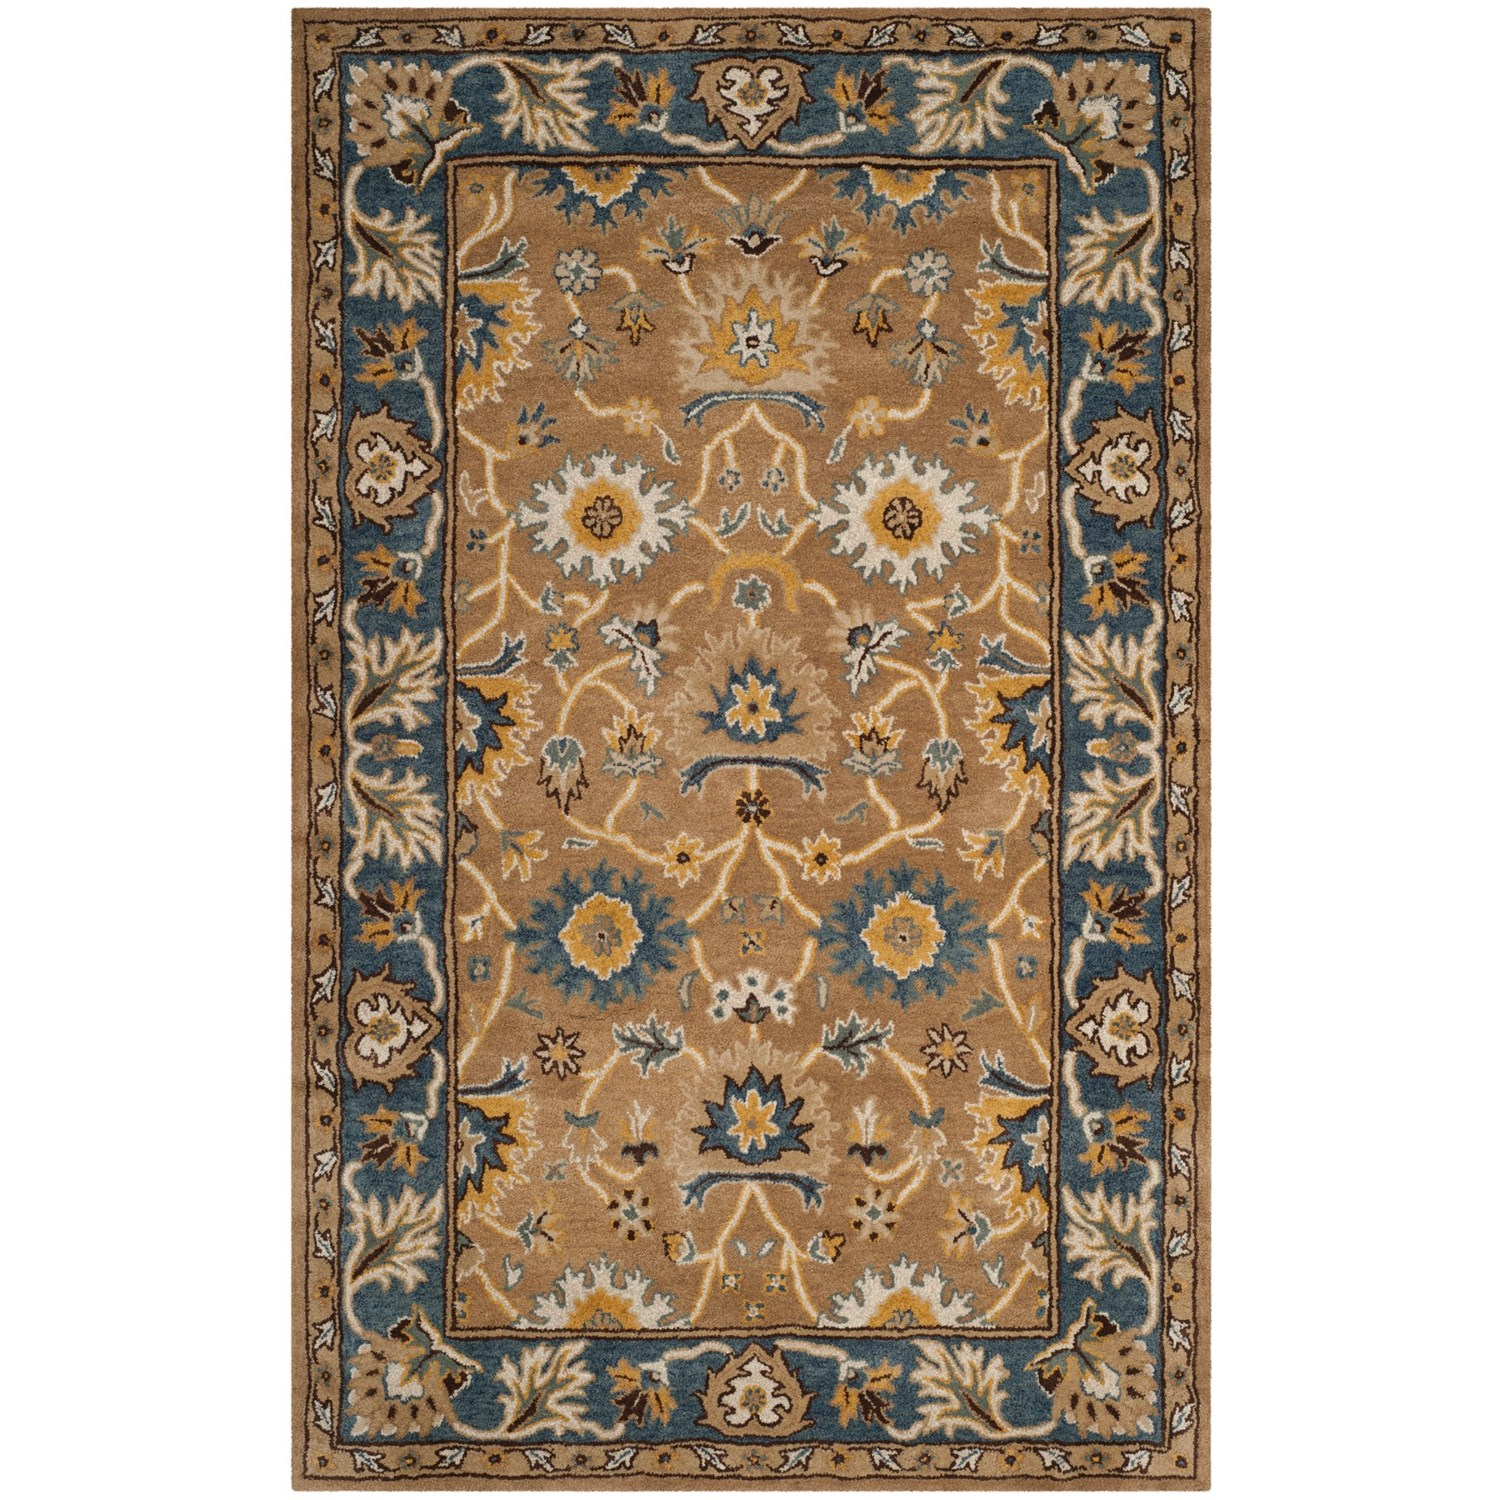 tufted area rugs safavieh heritage collection camel and blue area rug 5x8 2958